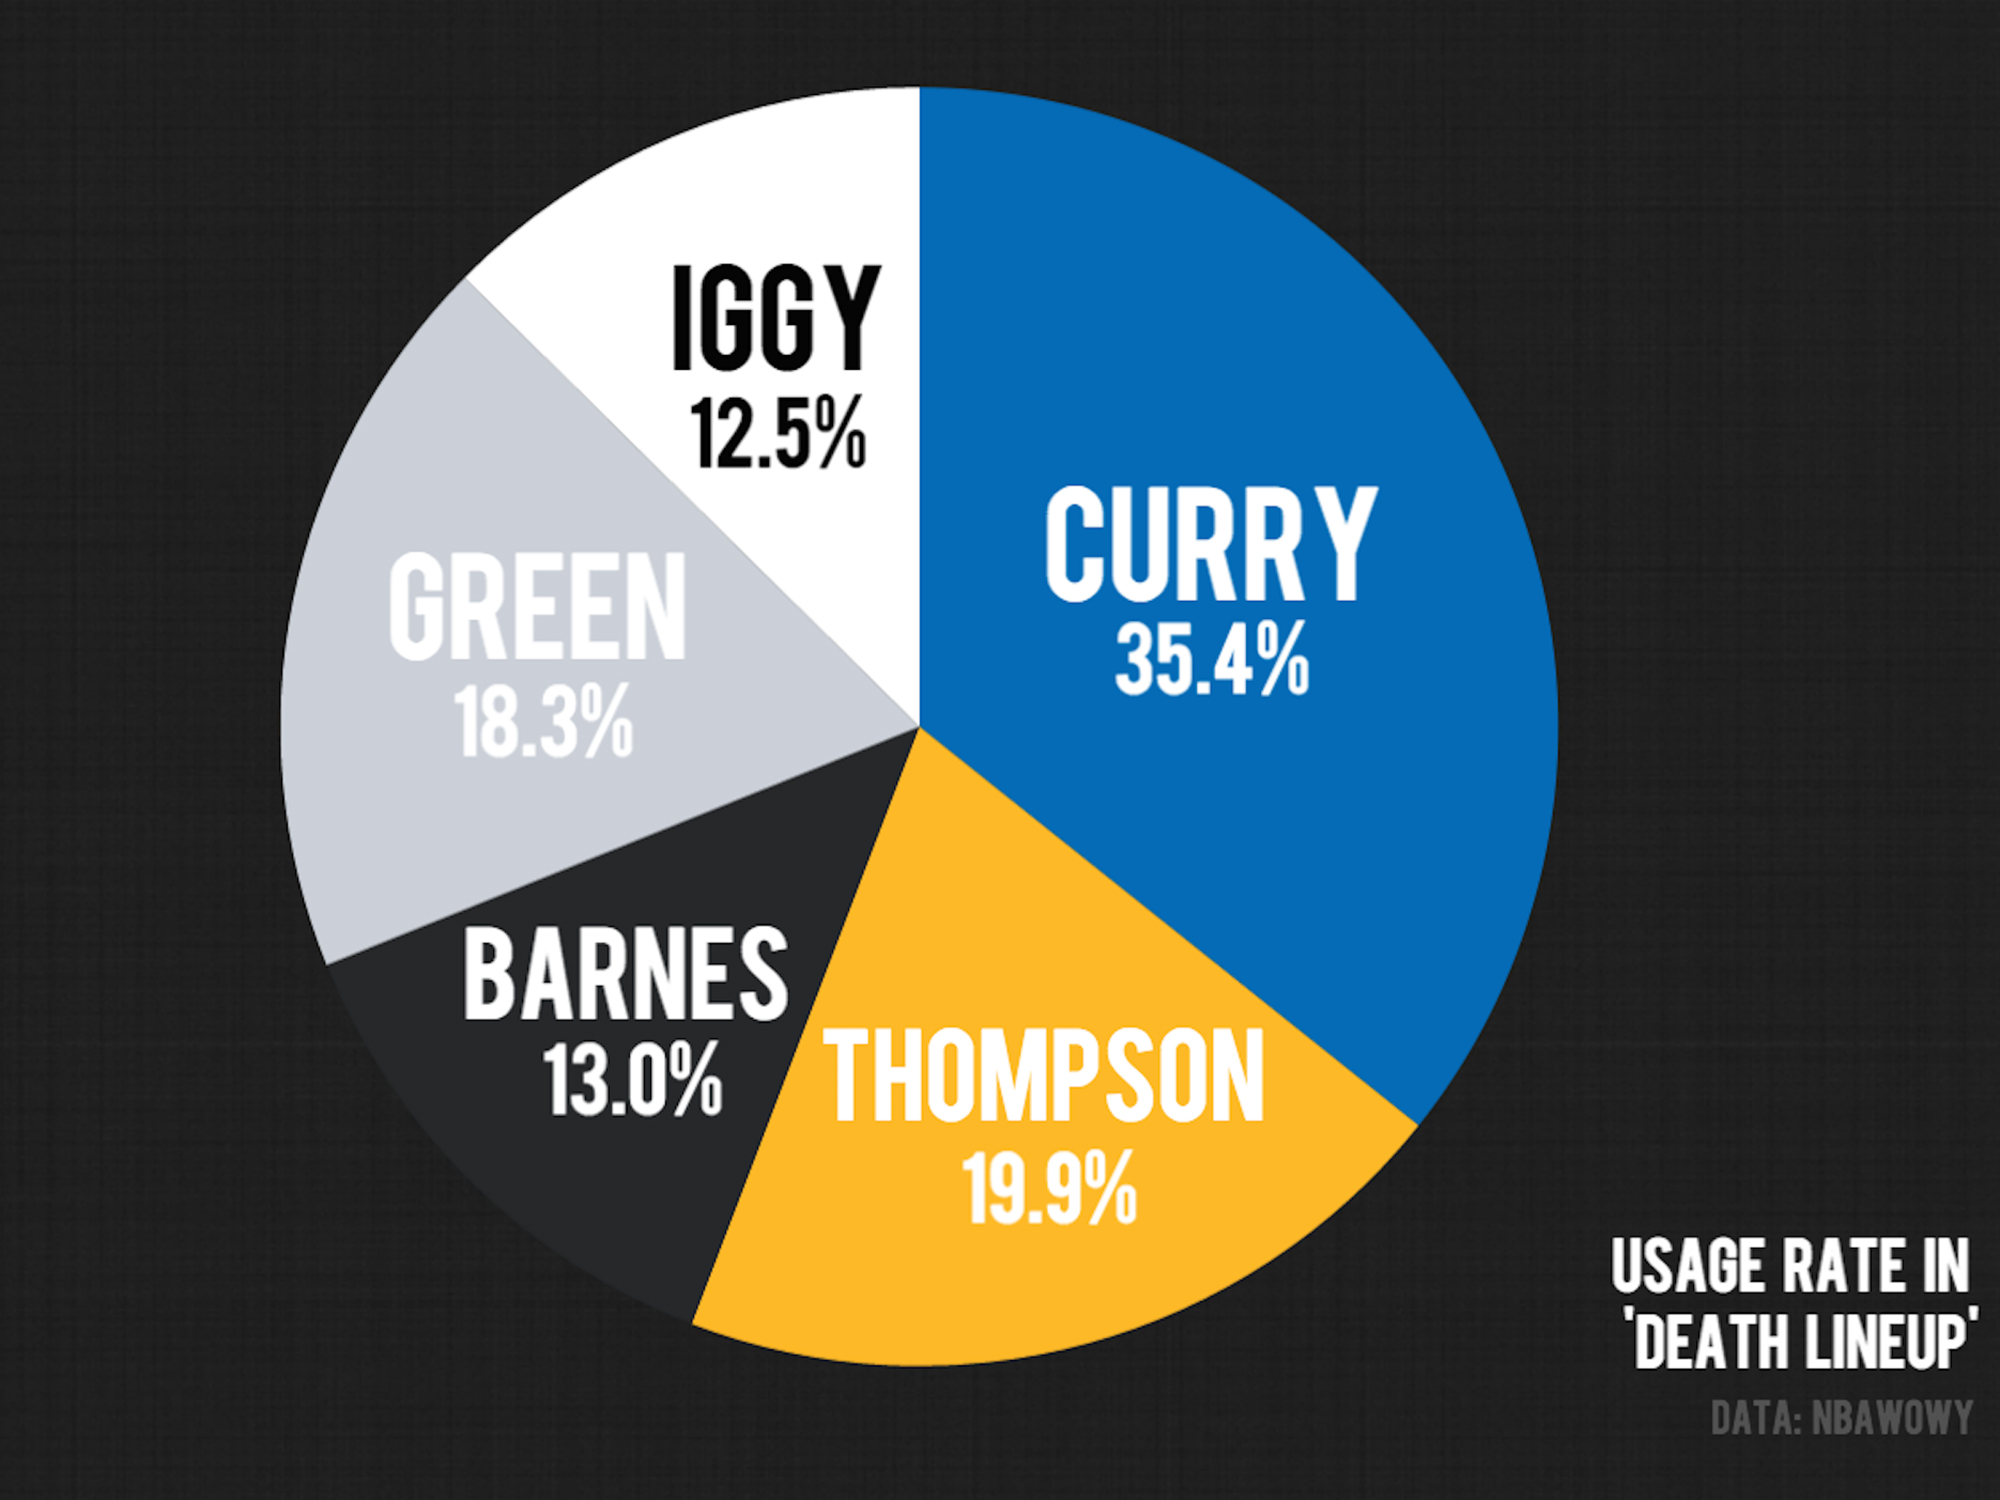 golden-state-warriors-death-lineup-usage-rate